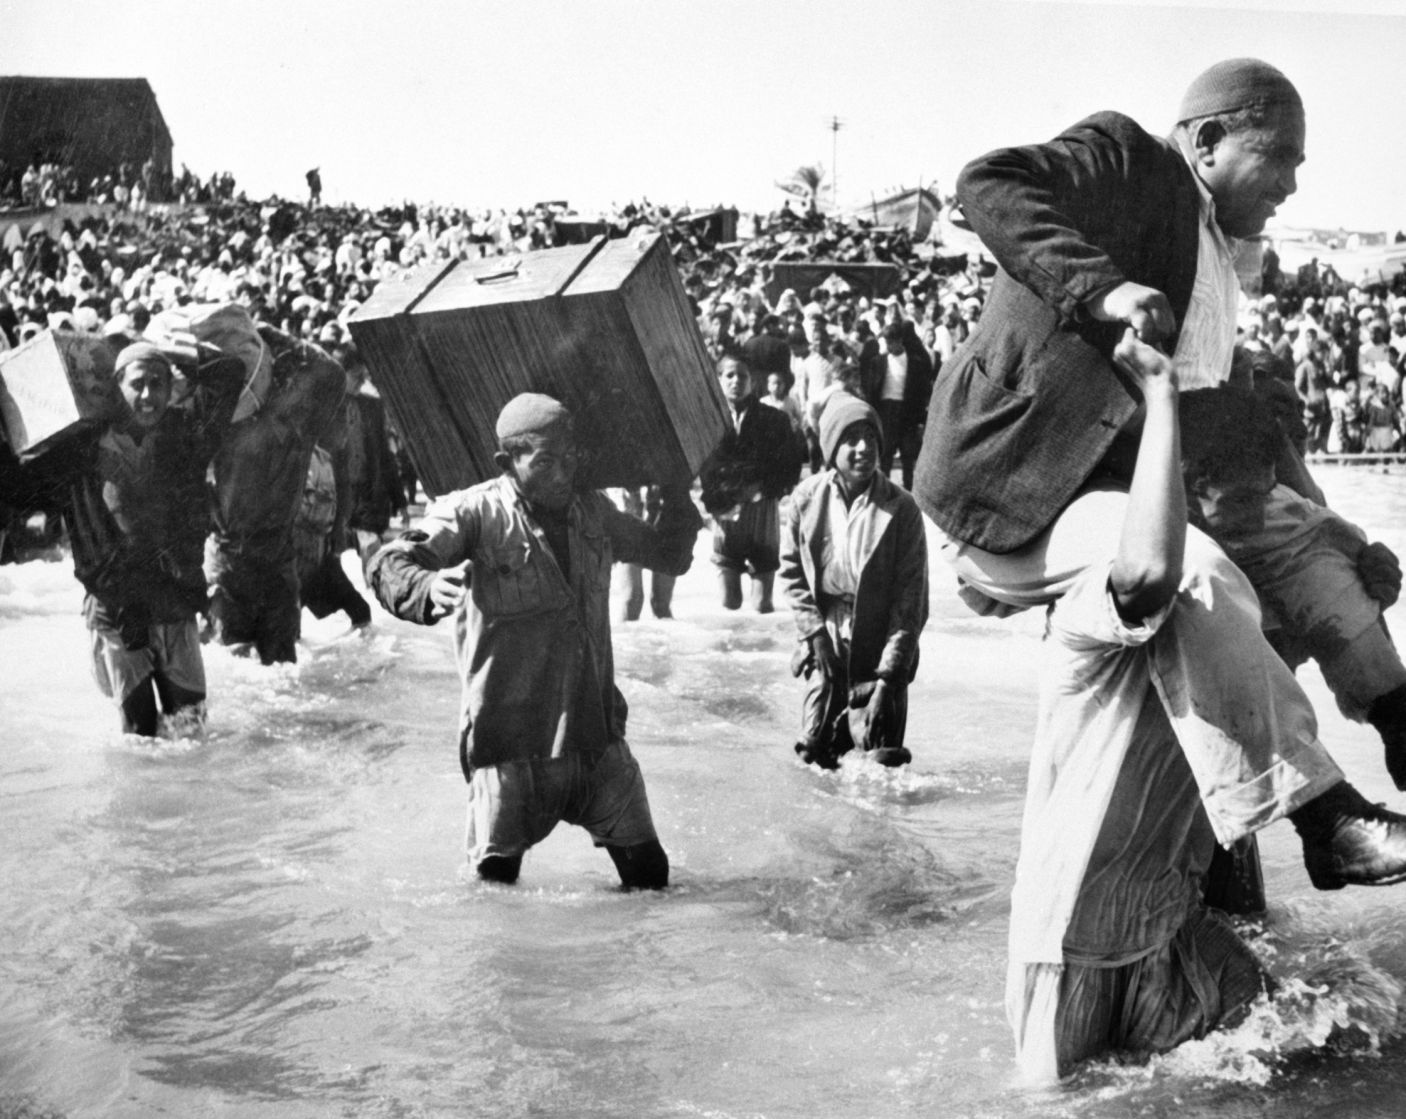 Palestine refugees initially displaced to Gaza board boats to Lebanon or Egypt, in 1949. Hrant Nakashian/1949 UN Archives